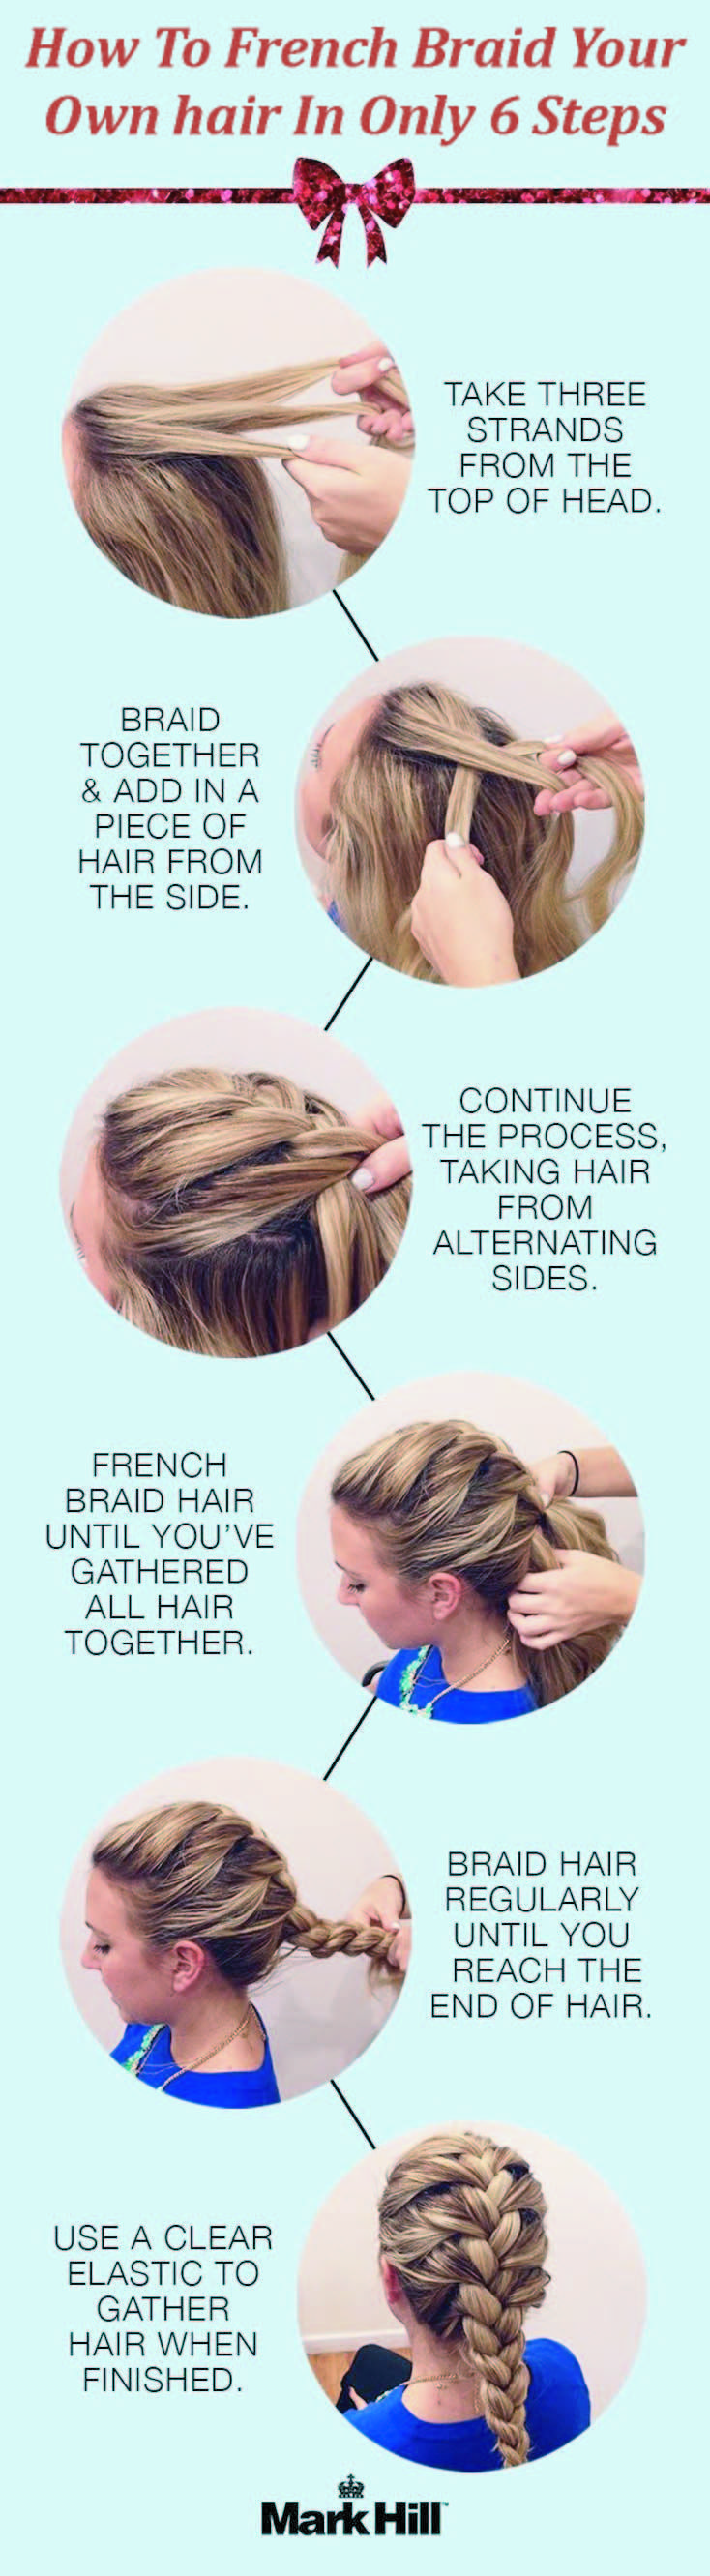 Easy Tutorial Ever To French Braid Your Hair For A Glamorous Look With Images Braiding Your Own Hair Braided Hairstyles Tutorials Medium Hair Styles